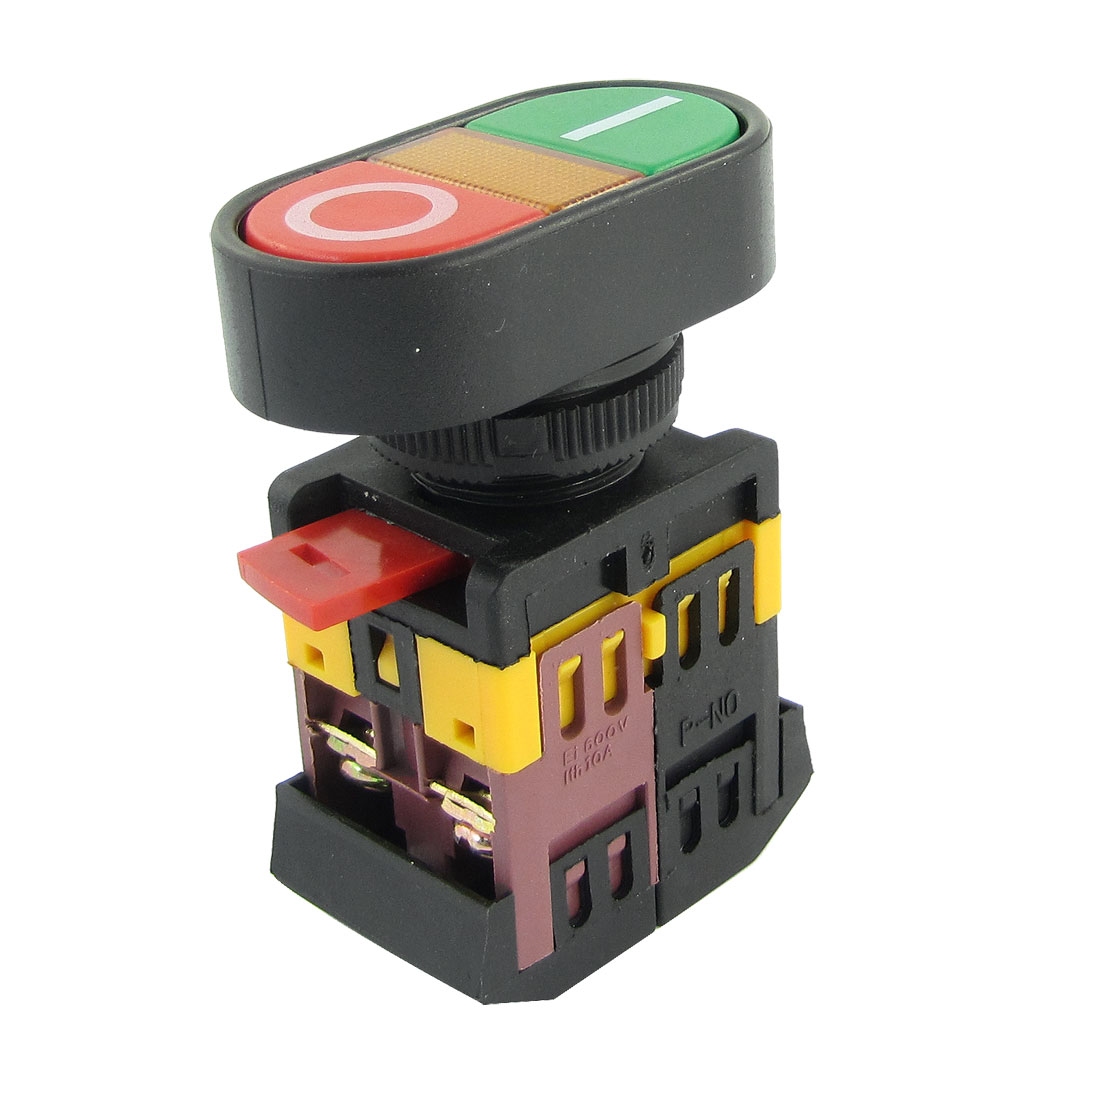 AC 600V 10A ON OFF Momentary Pushbutton Switch w 220V Neon Light - image 1 of 1